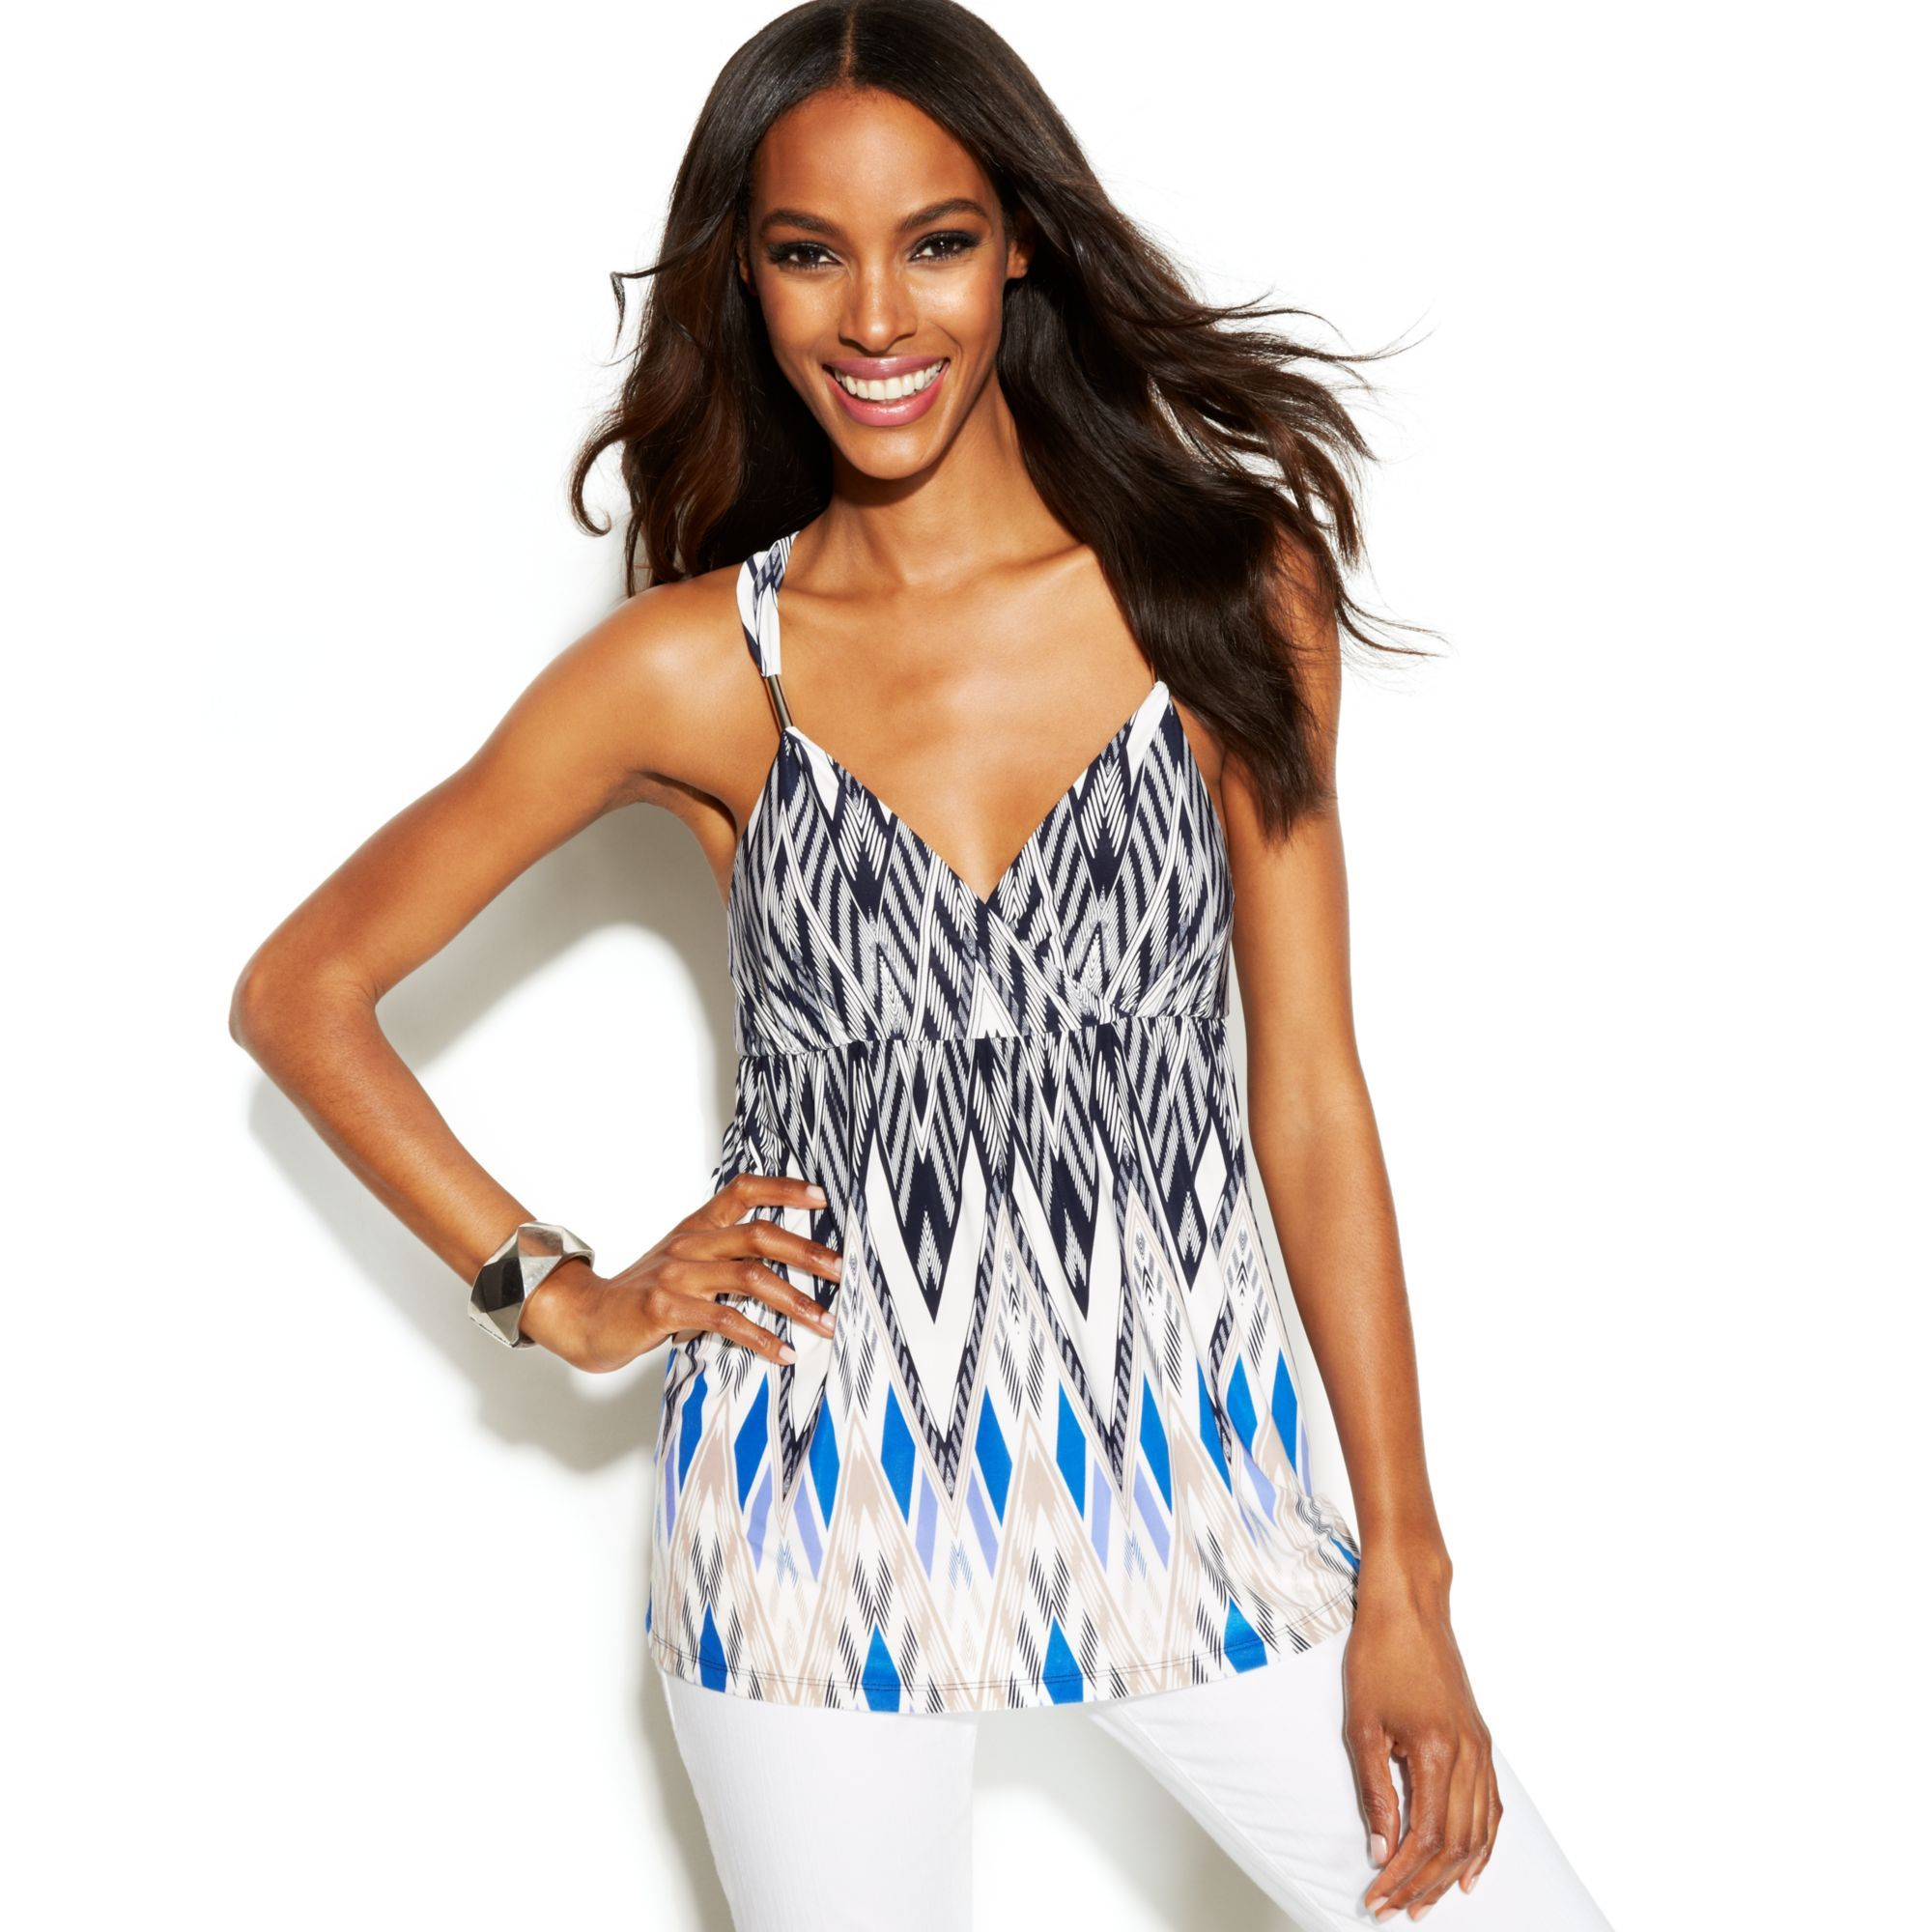 INC INTERNATIONAL CONCEPTS Multicolor tops sleeveless tops_  http://www.lyst.com/clothing/inc-international-concepts-tops-sleeveless-diamond-chevron/